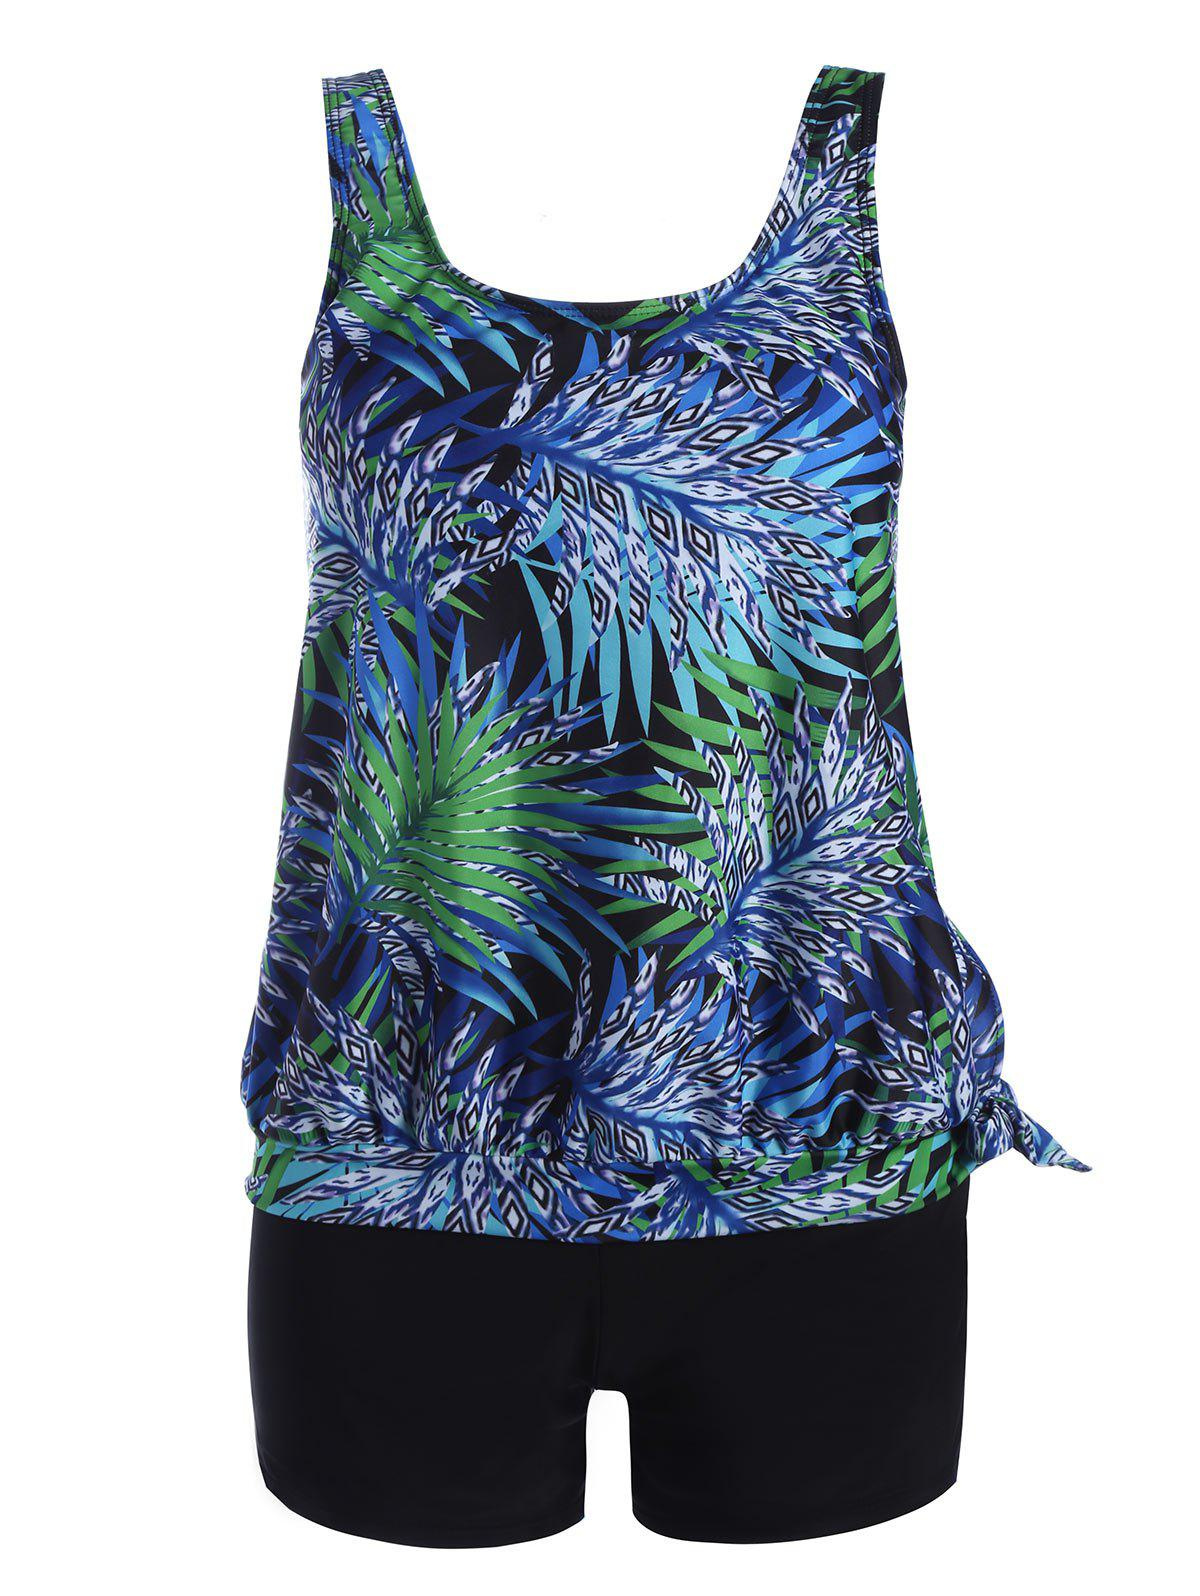 Plus Size Tropical Leaves Print Blouson TankiniWOMEN<br><br>Size: 3XL; Color: COLORMIX; Gender: For Women; Swimwear Type: Tankini; Material: Nylon,Spandex; Bra Style: Padded; Support Type: Wire Free; Pattern Type: Print; Waist: Natural; Weight: 0.3500kg; Package Contents: 1 x Top  1 x Bottom;